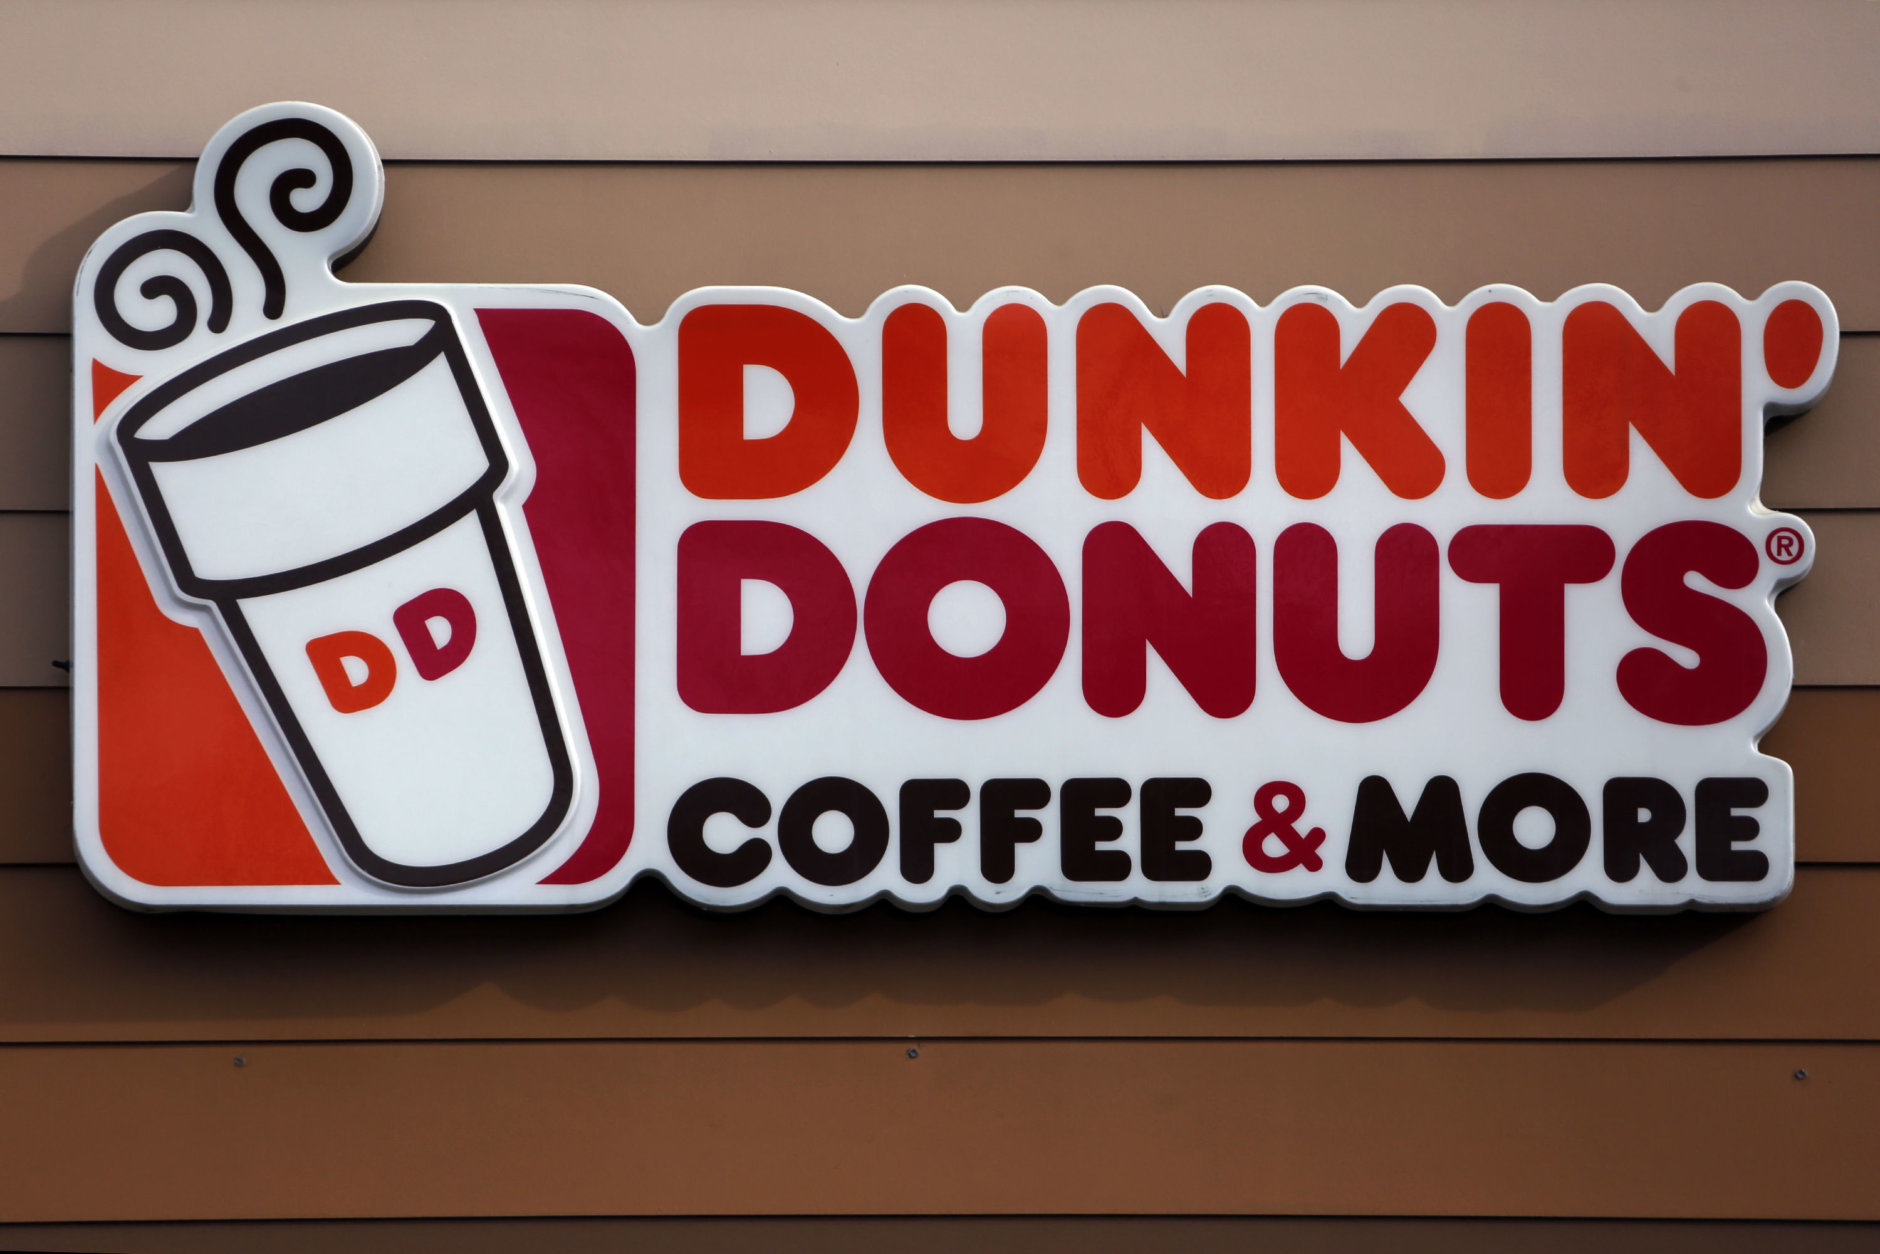 Dunkin' is serving up a new name and a free coffee on National Coffee Day: if you buy one hot coffee, you can get another hot coffee for free. (AP/Gene J. Puskar)